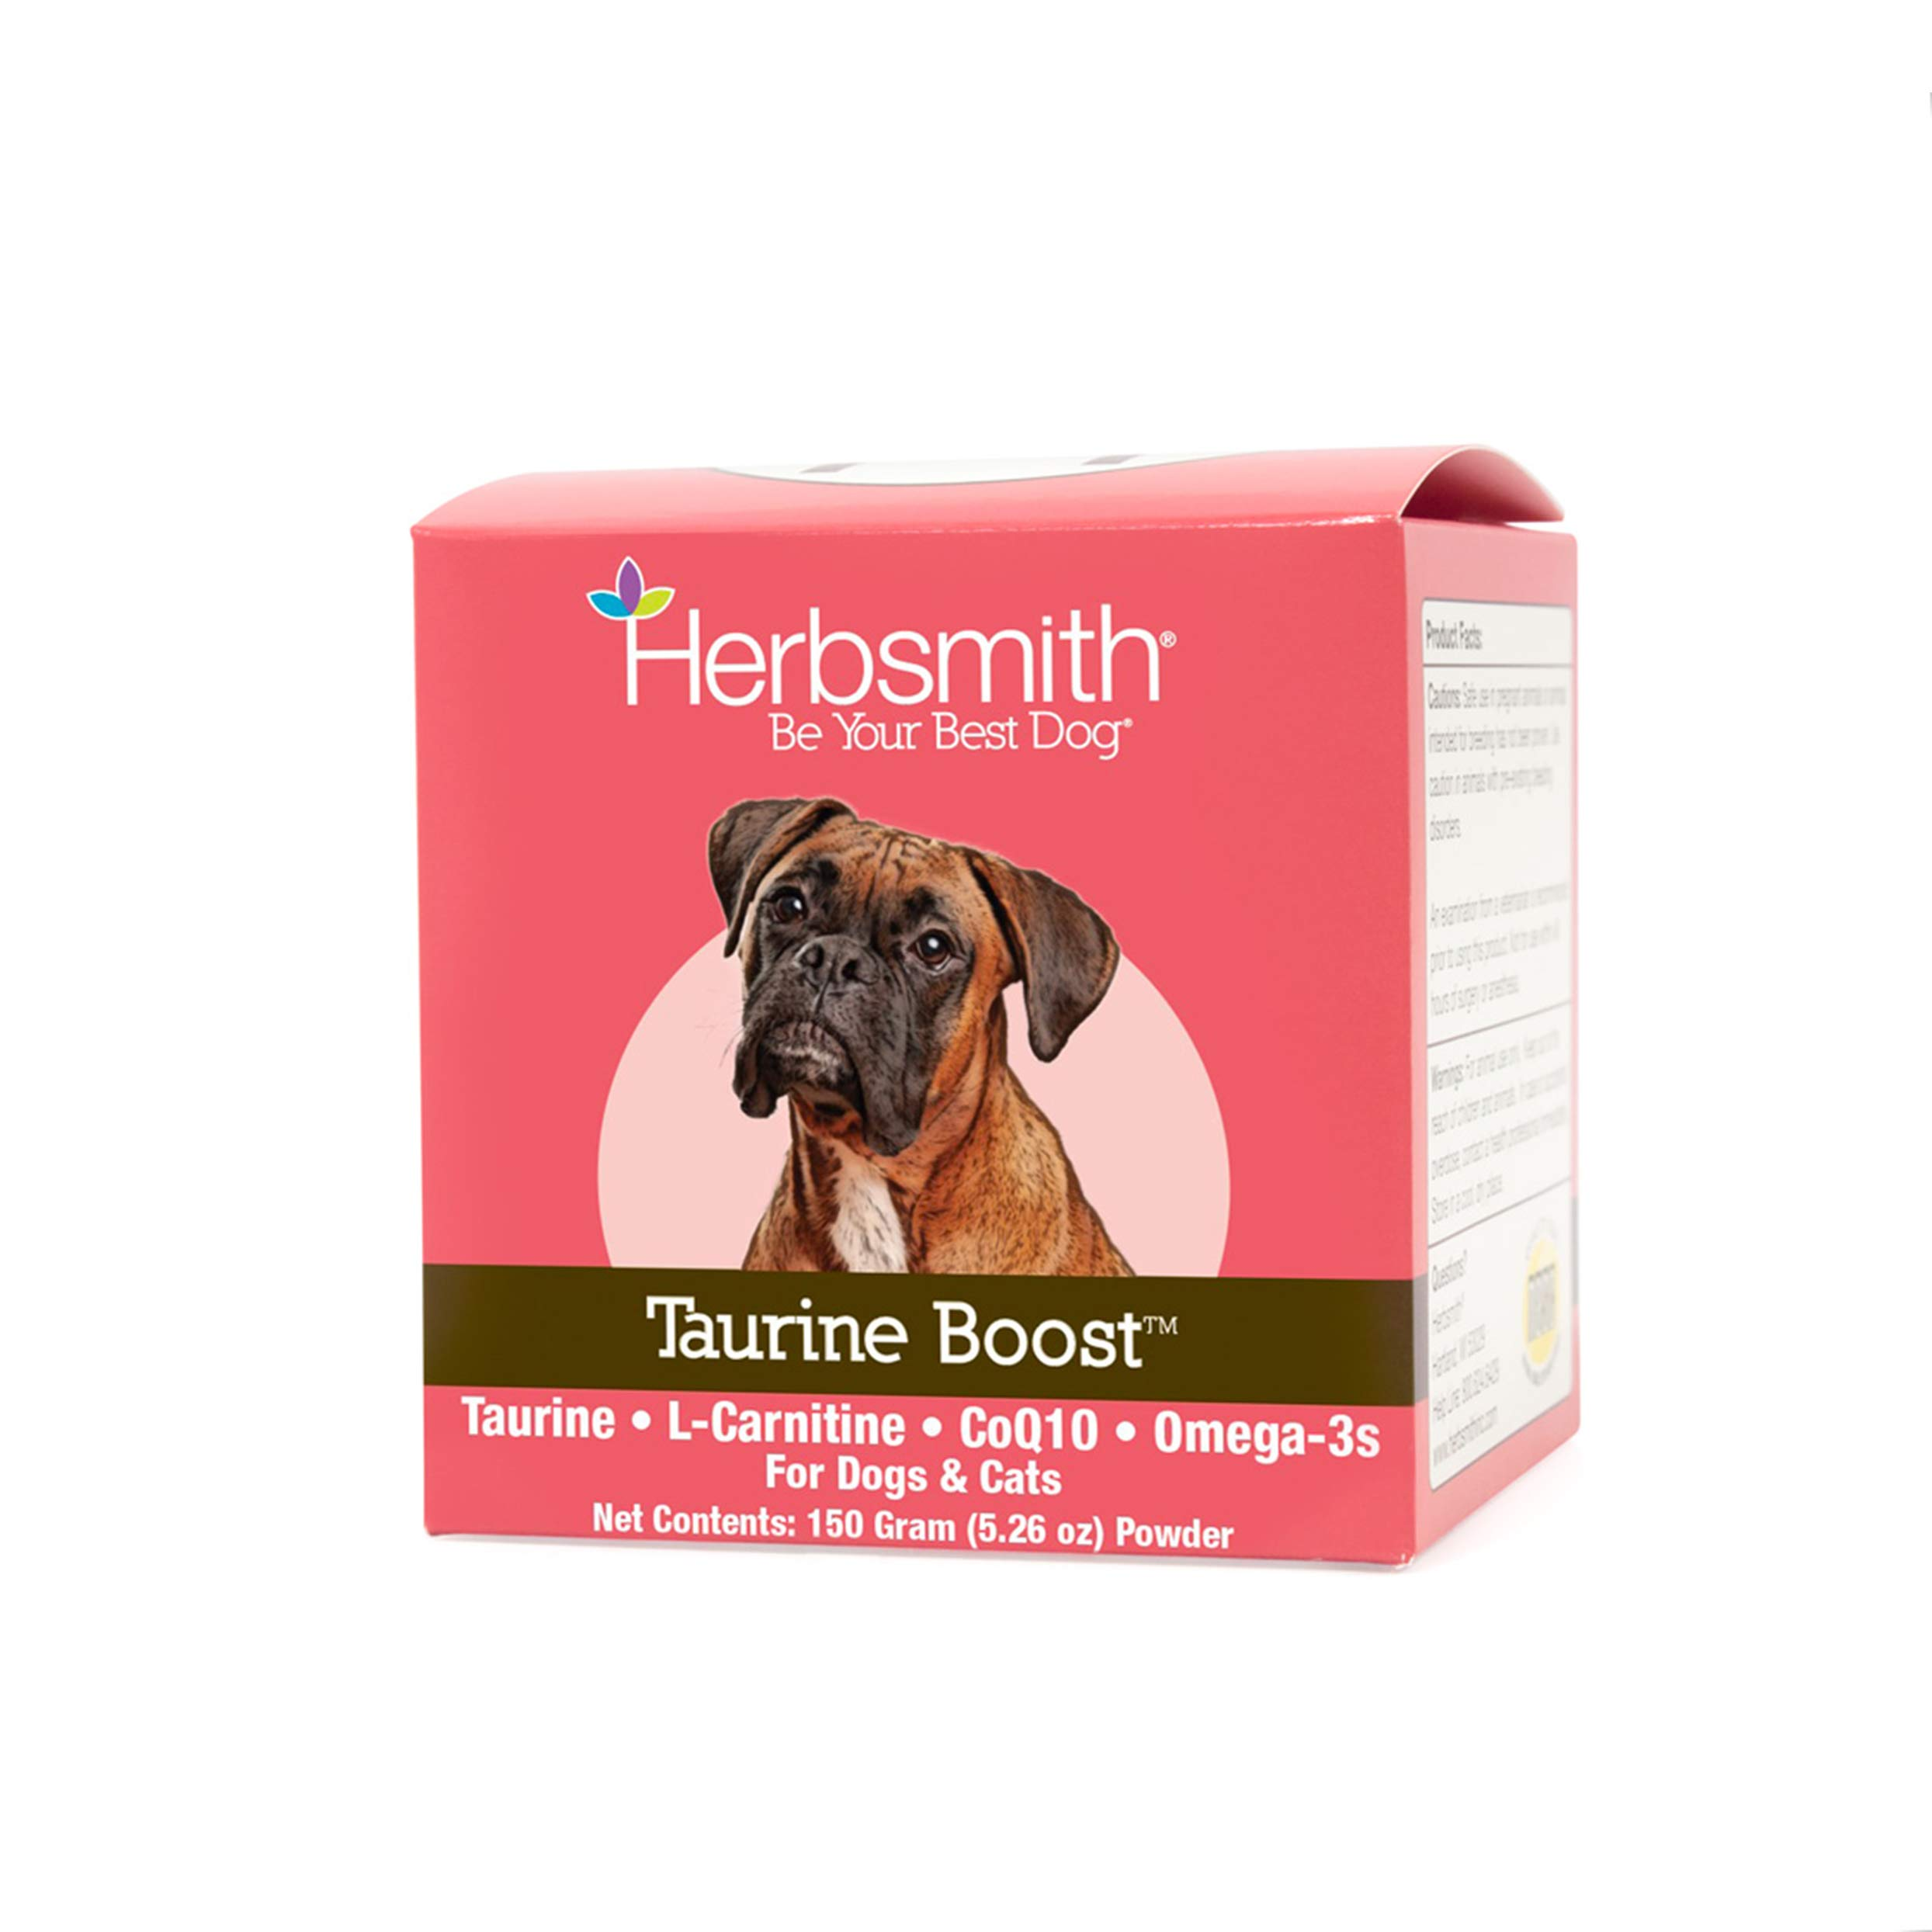 Herbsmith Taurine Boost - Cardiac and Heart Support for Dogs and Cats - Taurine Supplement for Dog and Cat Heart Health - with CoQ10, Taurine and L-Carnitine for Dogs - 150g by Herbsmith